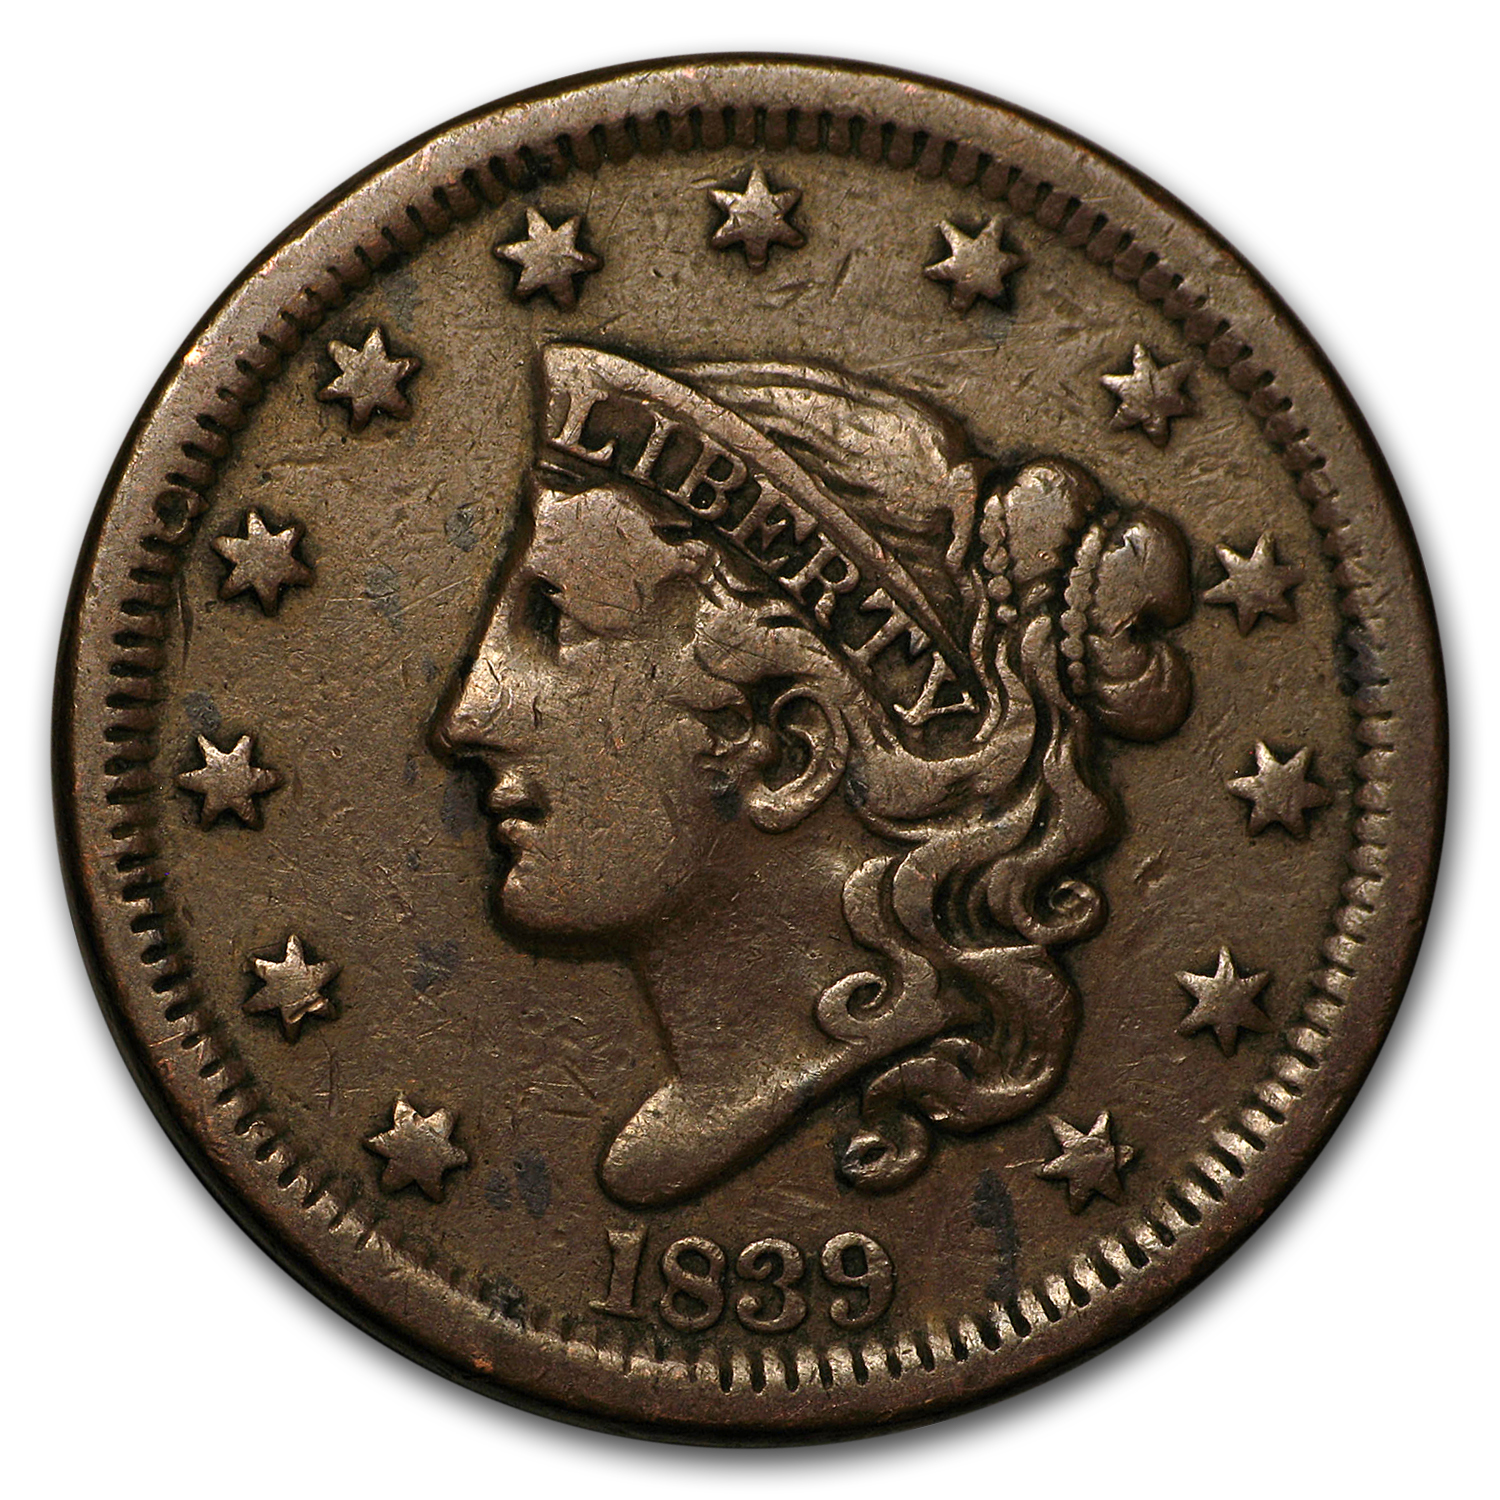 1839 Head of 1838 Large Cent VF